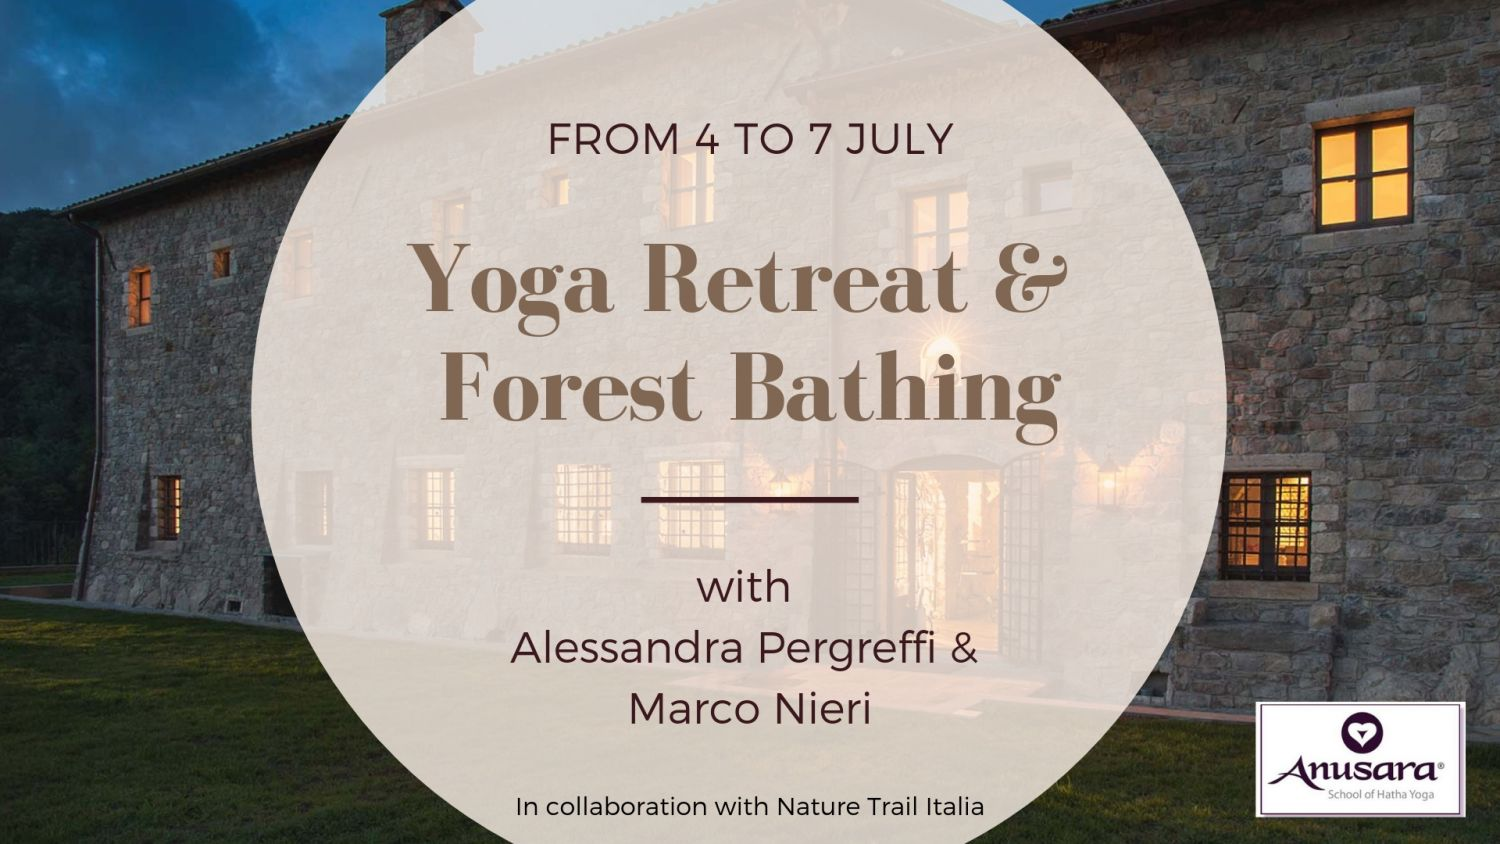 YOGA RETREAT & FOREST BATHING